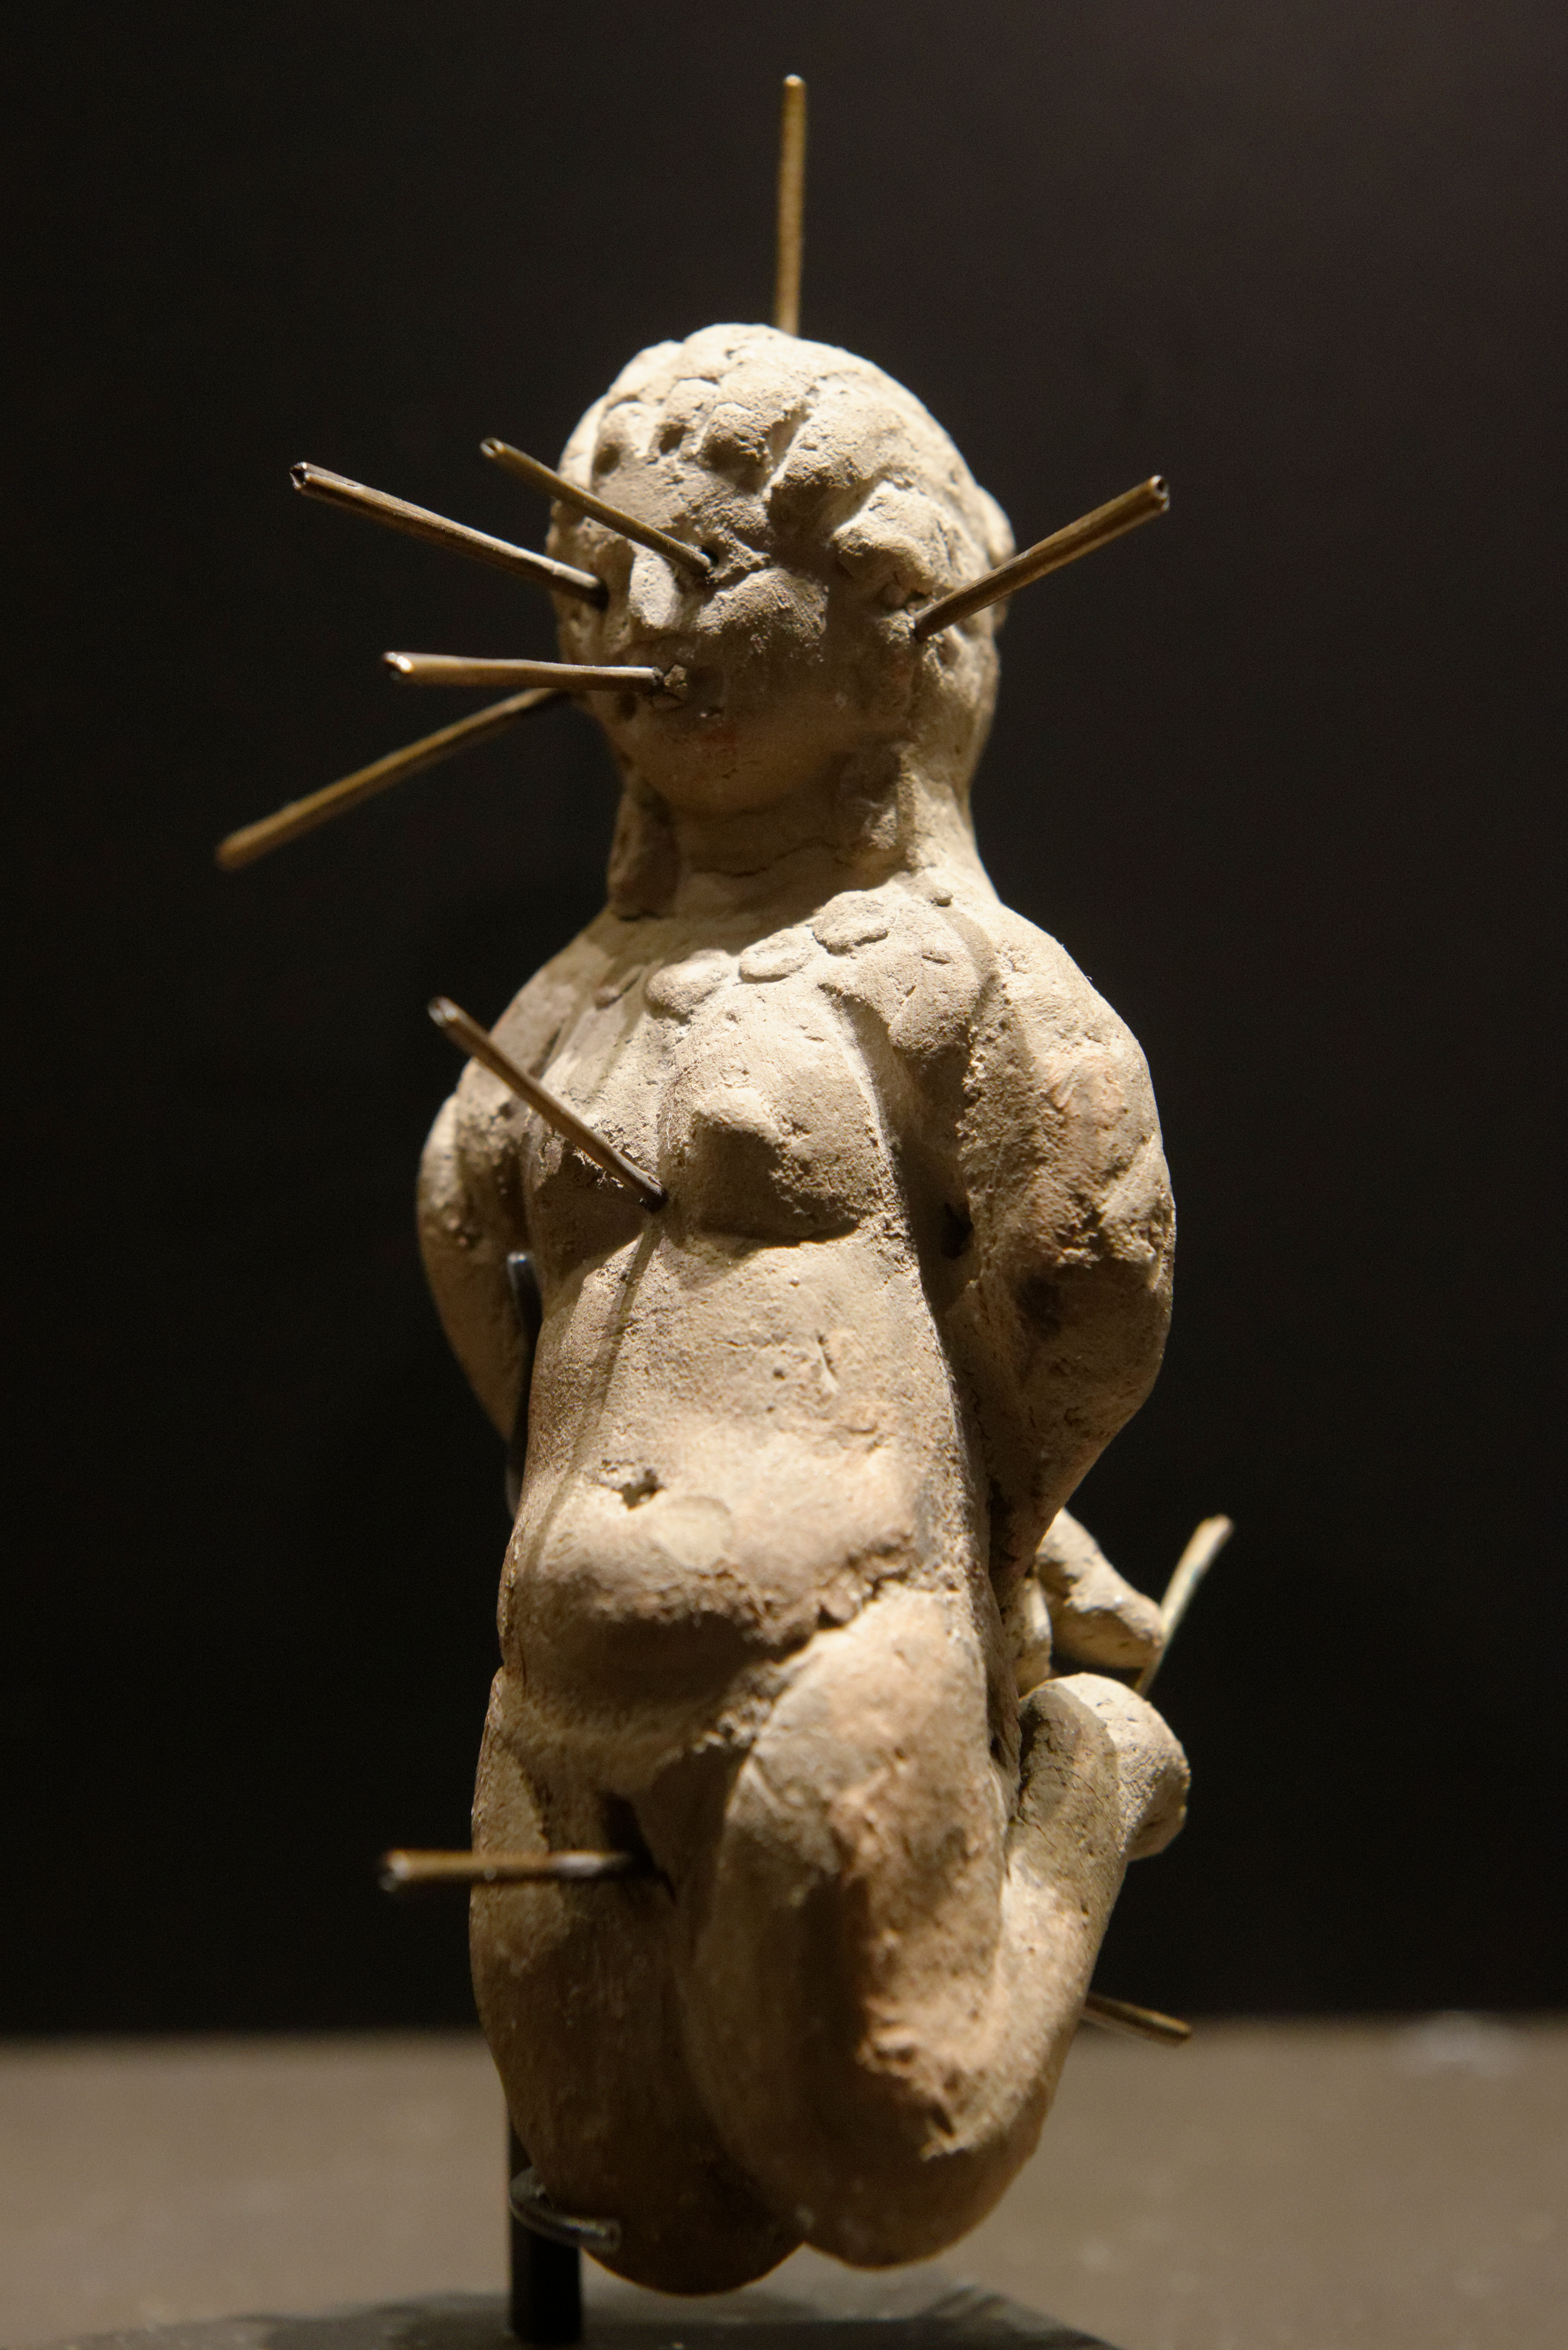 Spells, charms, erotic dolls: love magic in the ancient Mediterranean